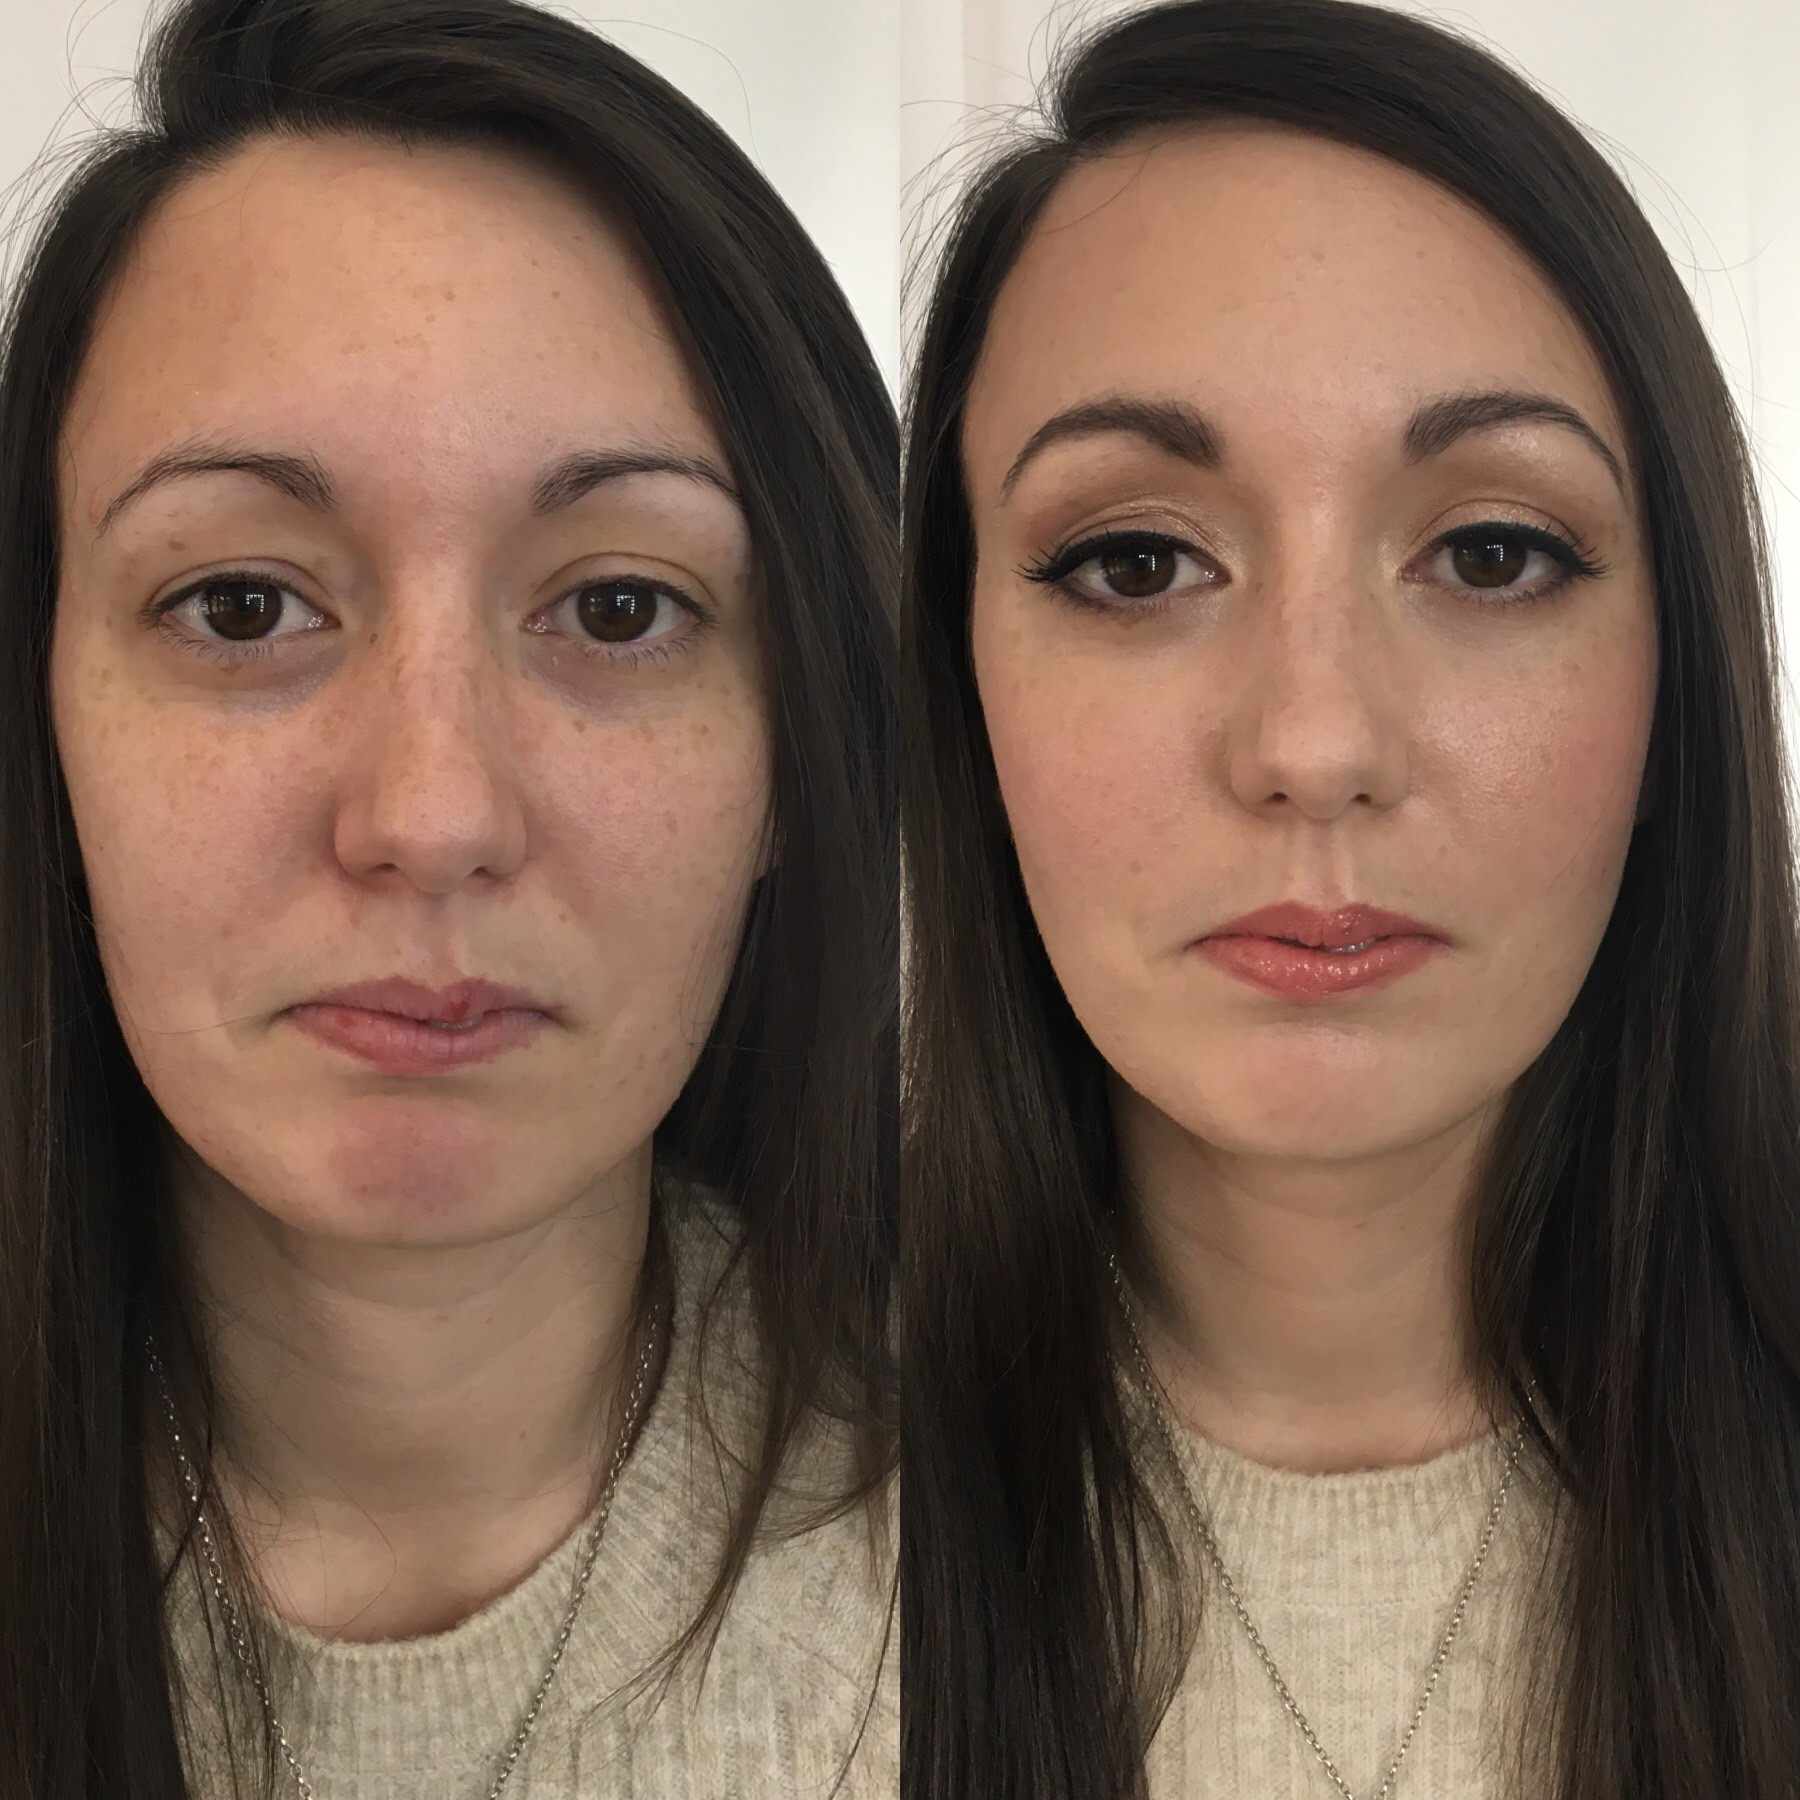 Susana visited me for a makeup lesson. She doesn't wear much makeup and leads a very busy life, but wanted to be shown what products to use to make her look more polished for everyday. I also showed her how to apply some false lashes for an evening look. She loved it!